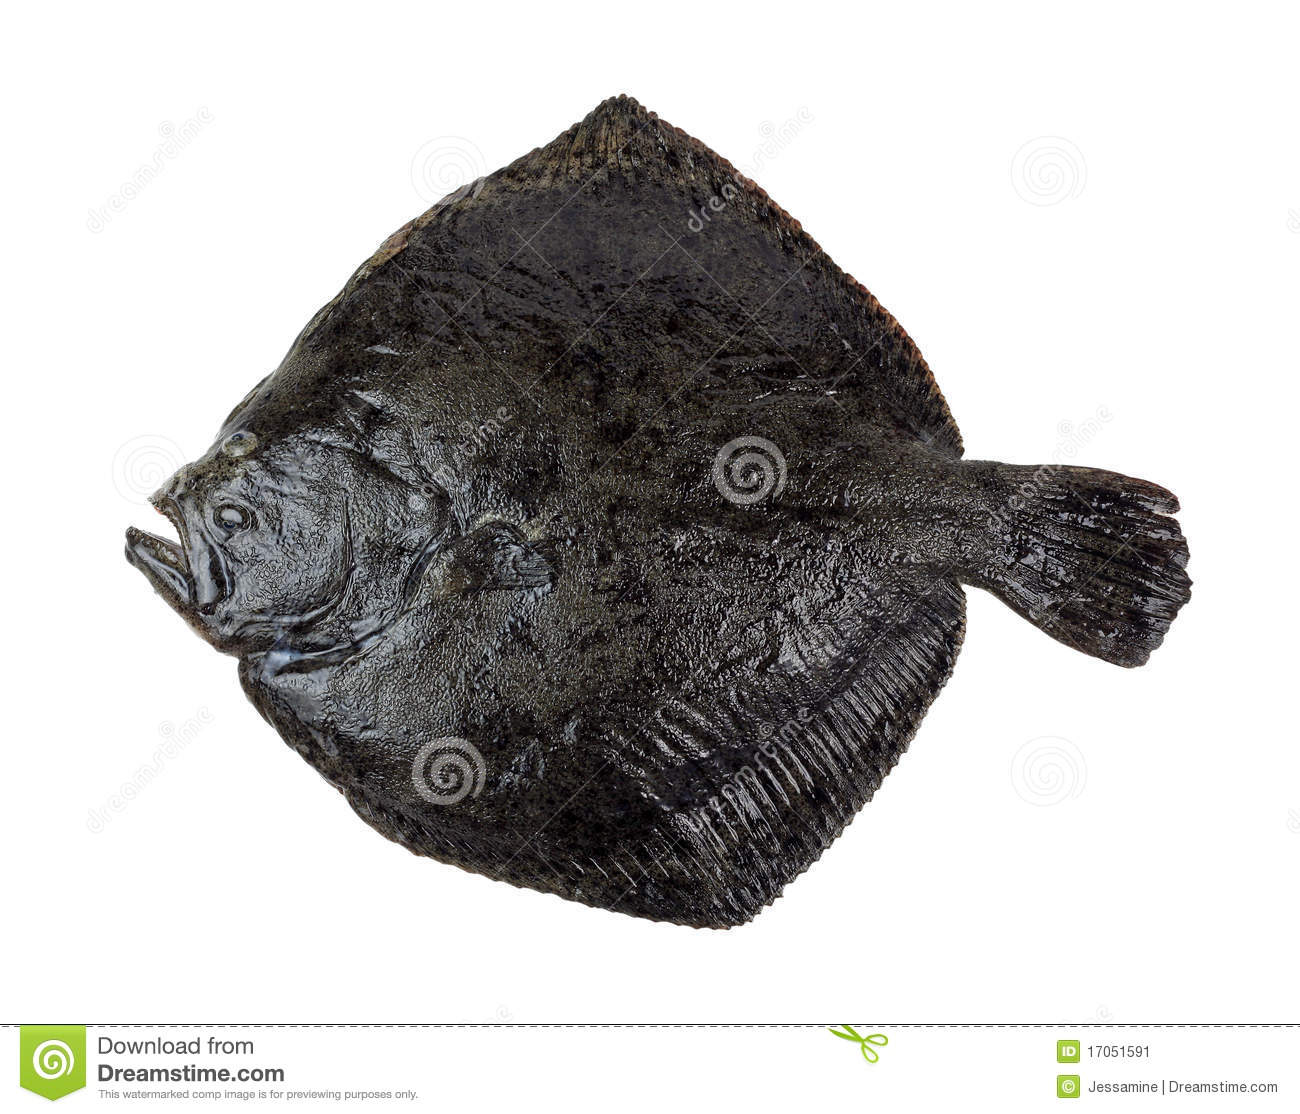 Turbot fish stock image image 17051591 for Turbot fish price